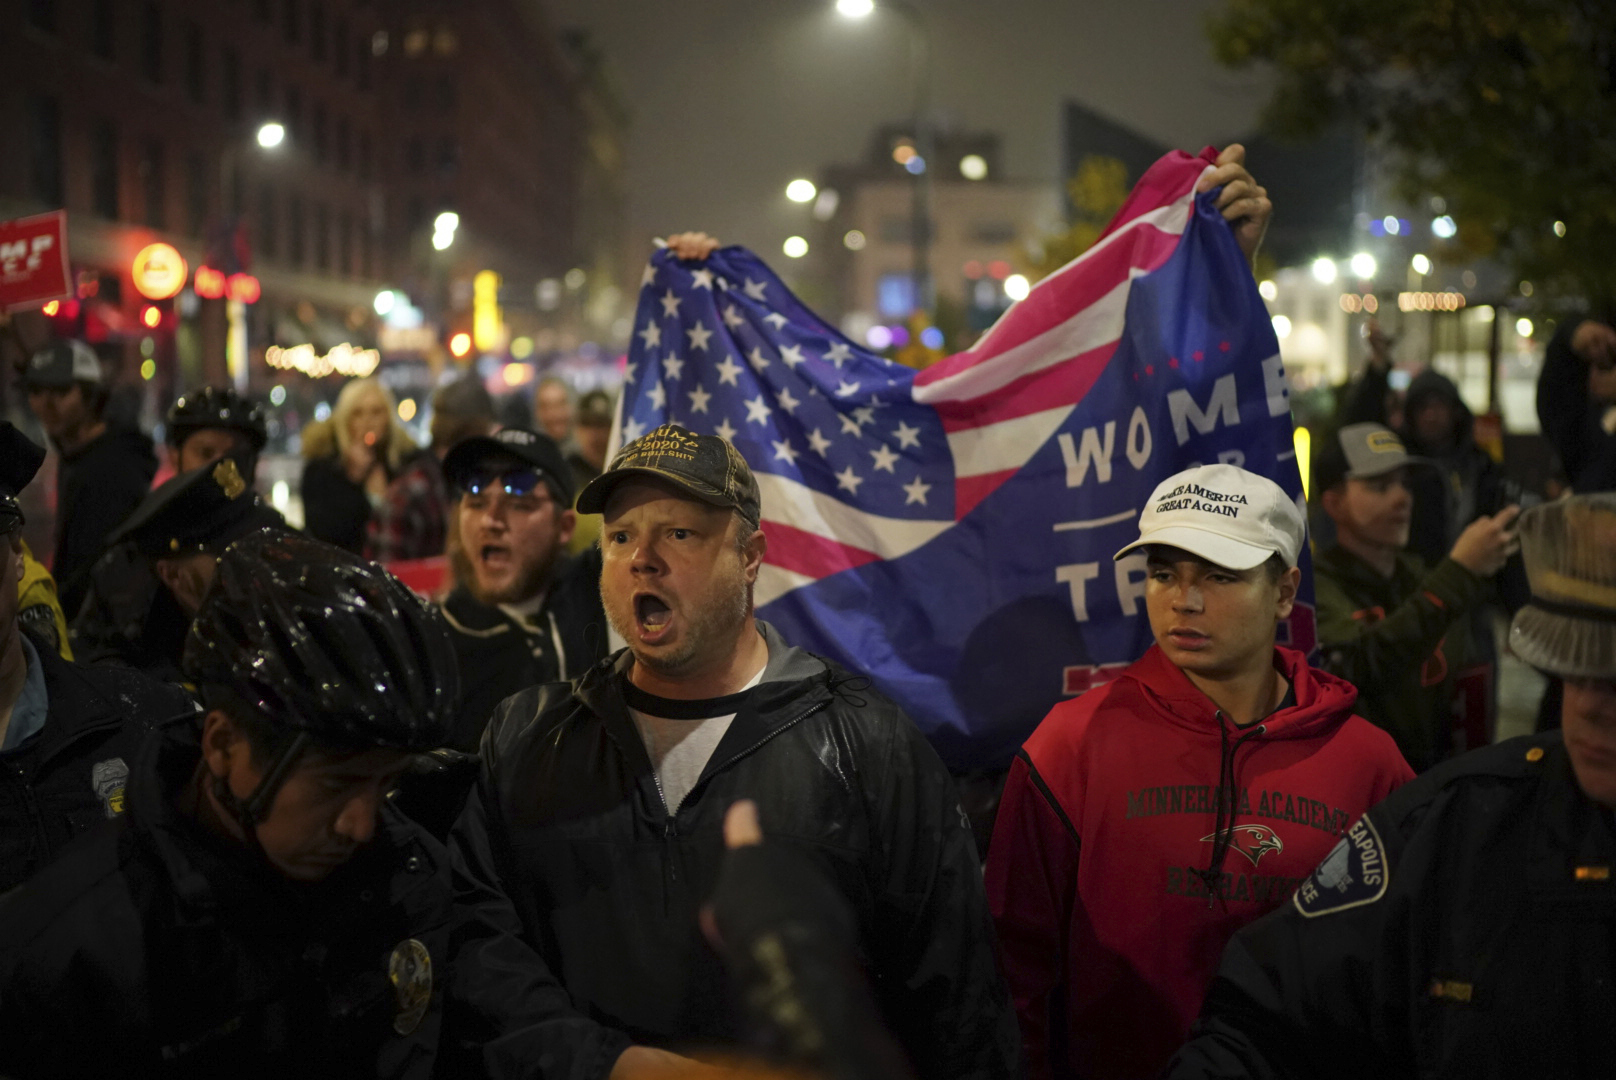 Pro-Trump people yell at protesters after the President's rally. (Photo: AP)